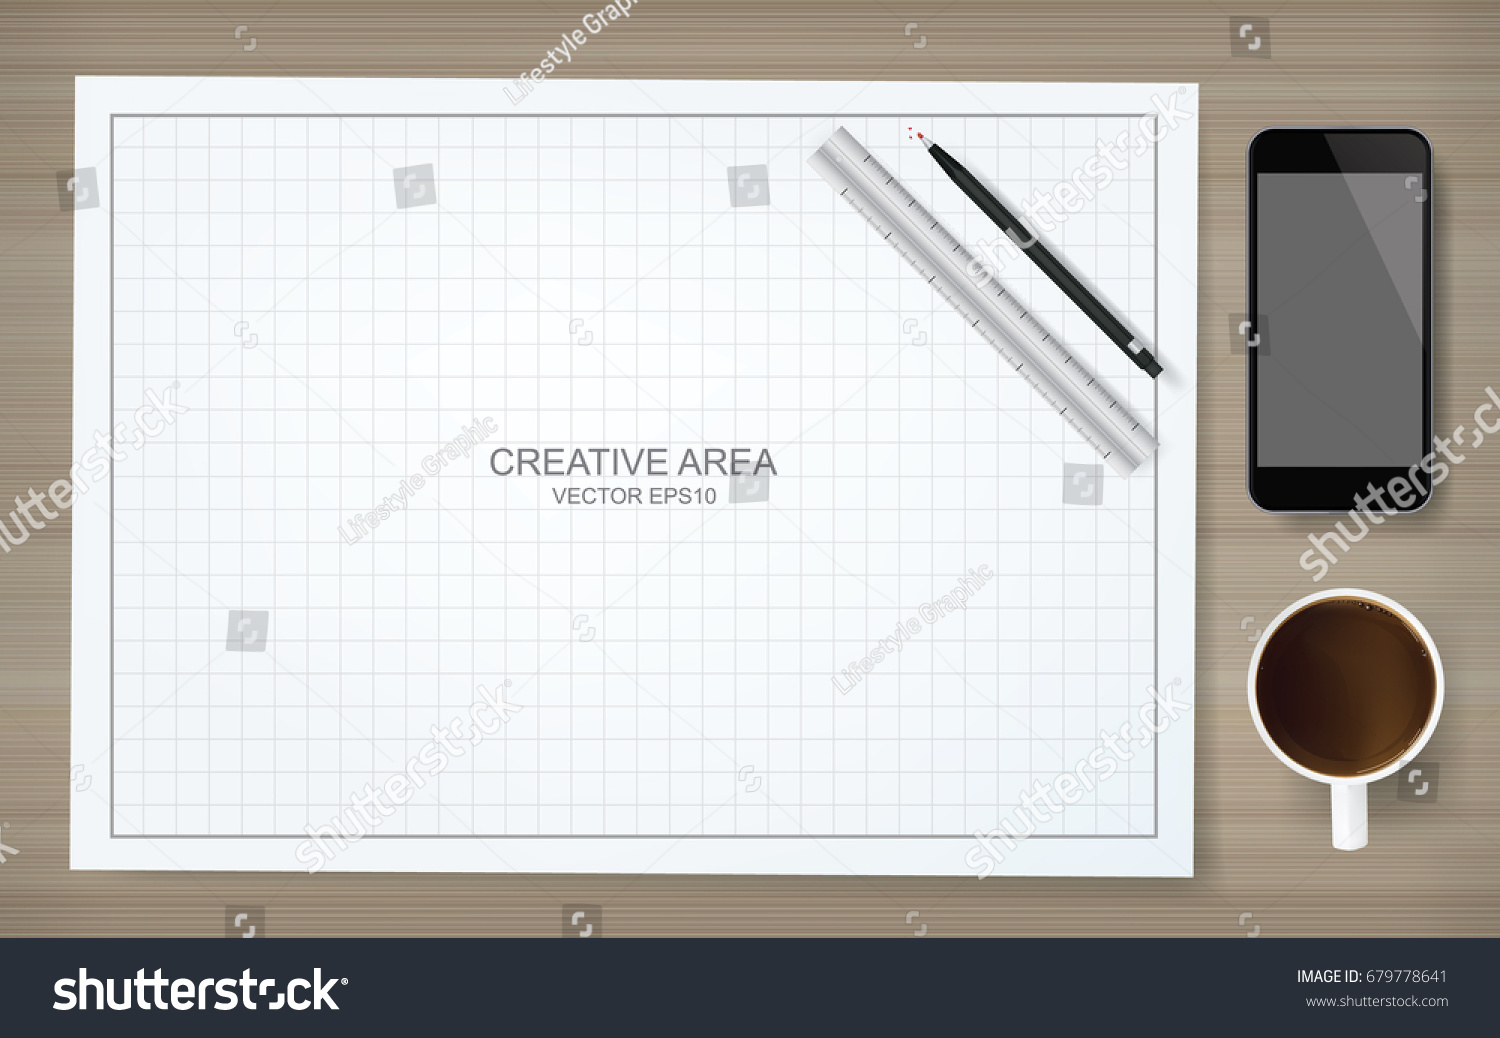 Construction background blueprint paper grid lines stock vector construction background of blueprint paper and grid lines with pencil ruler smartphone and coffee malvernweather Image collections